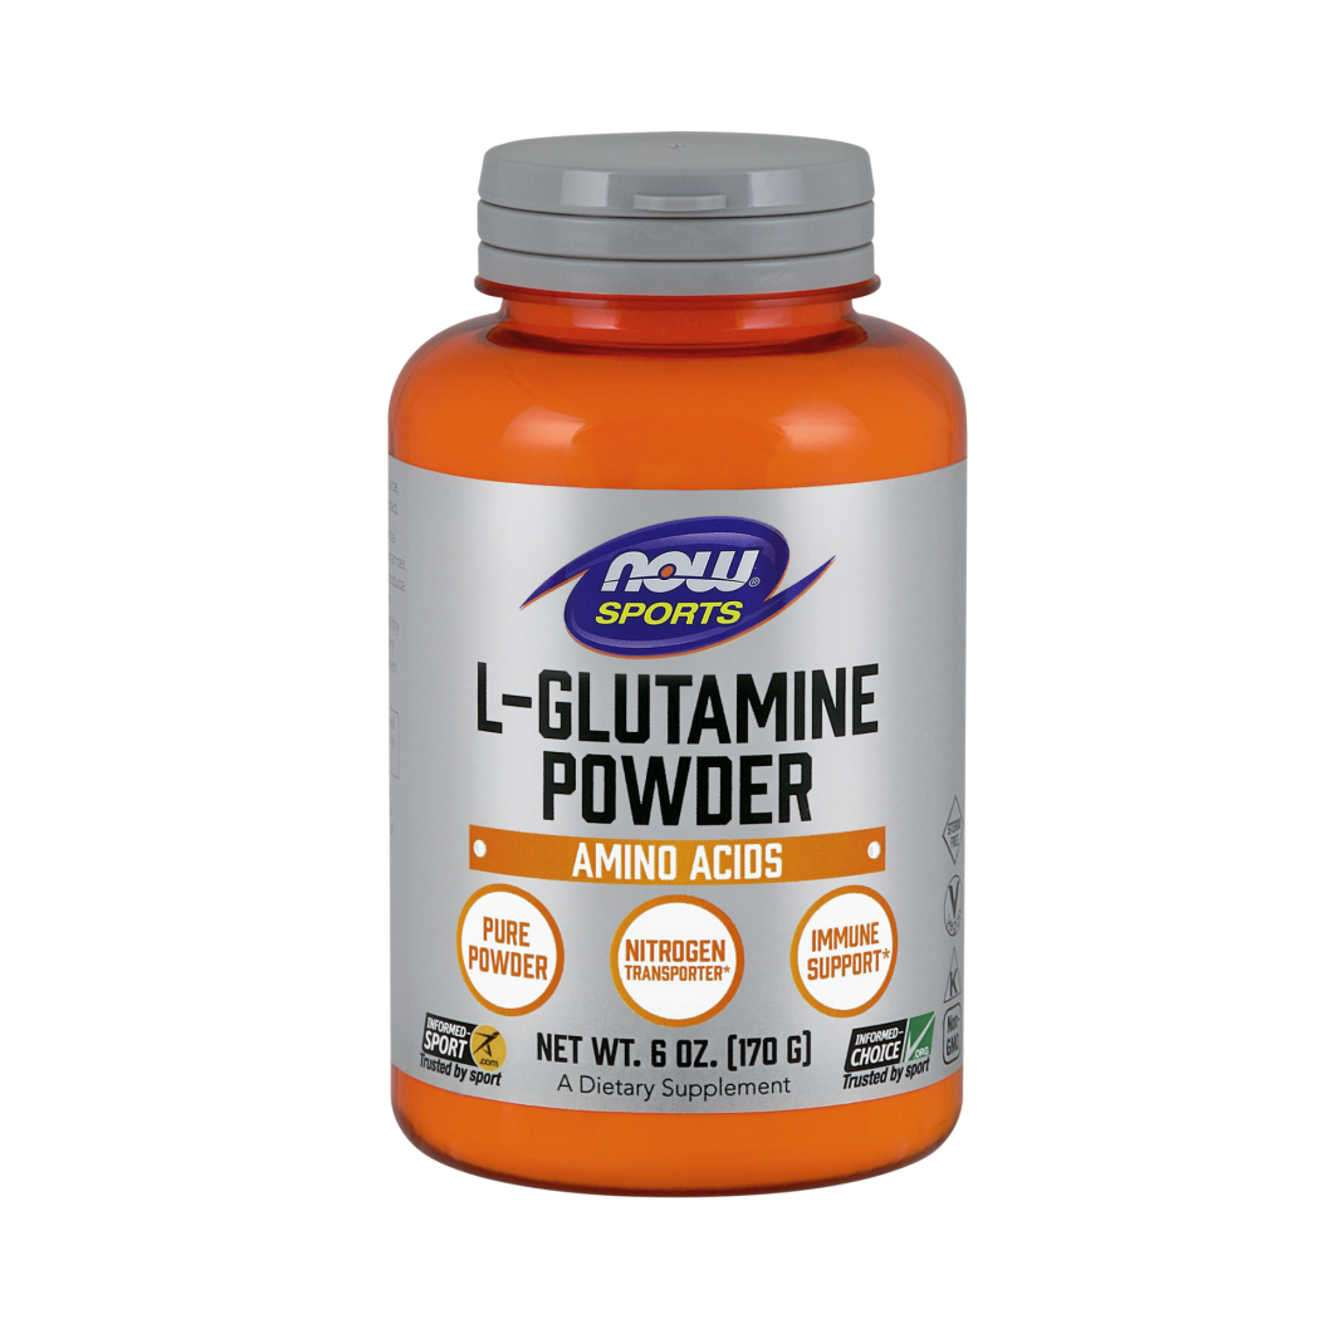 L-GLUTAMINE POWDER - 170g